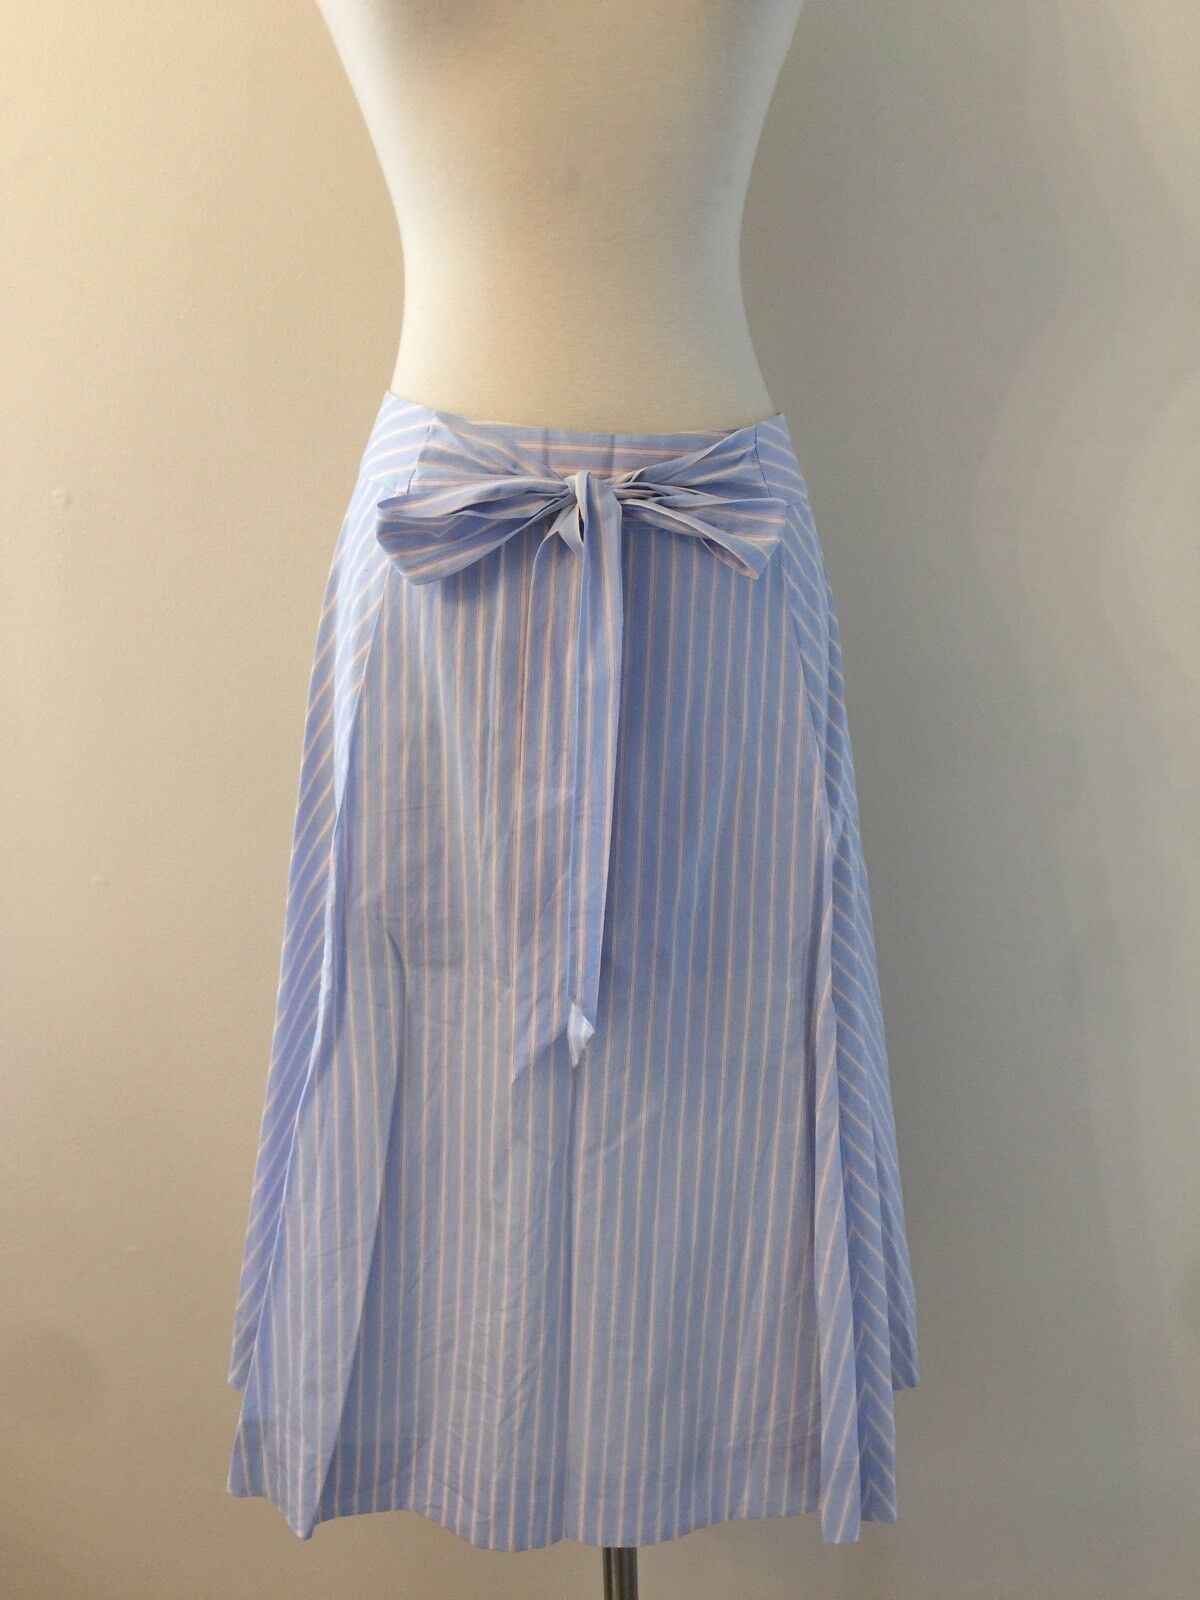 New Jcrew Women's Striped Poplin Belted Bow A Line Skirt Size 2